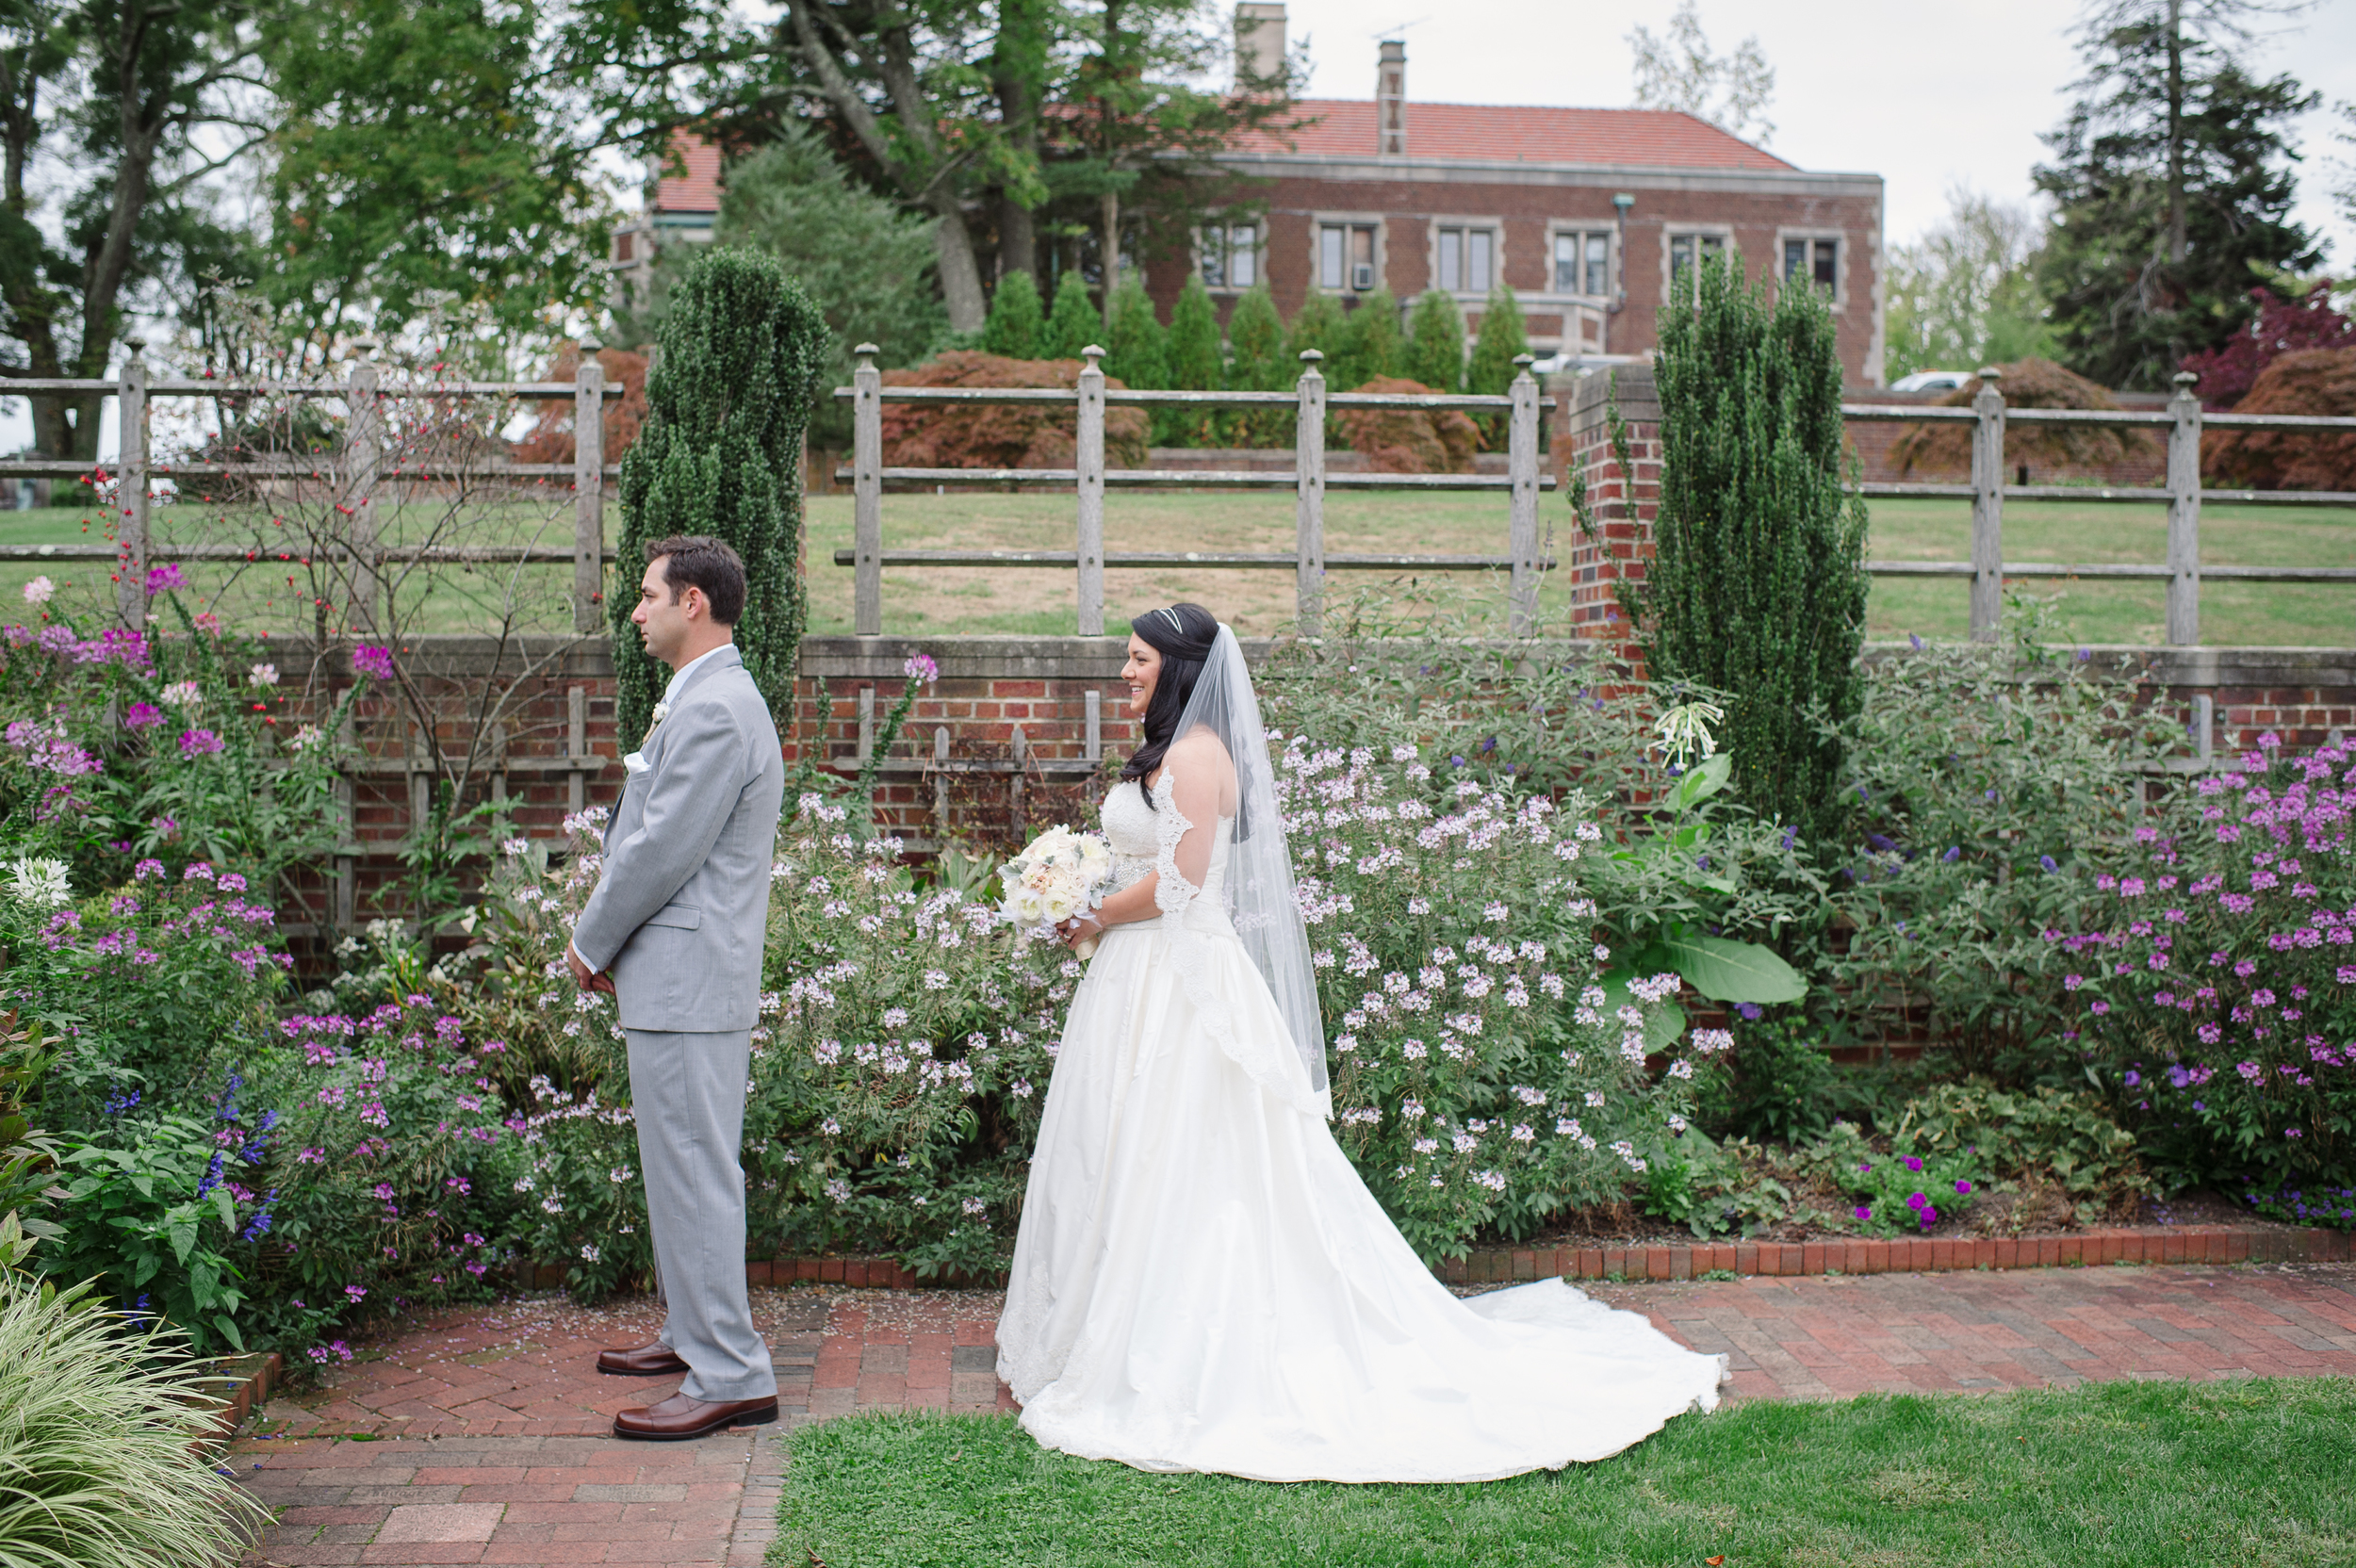 waveny_house_wedding_New_canaan_CT_Amy_Champagne_Events208.jpg